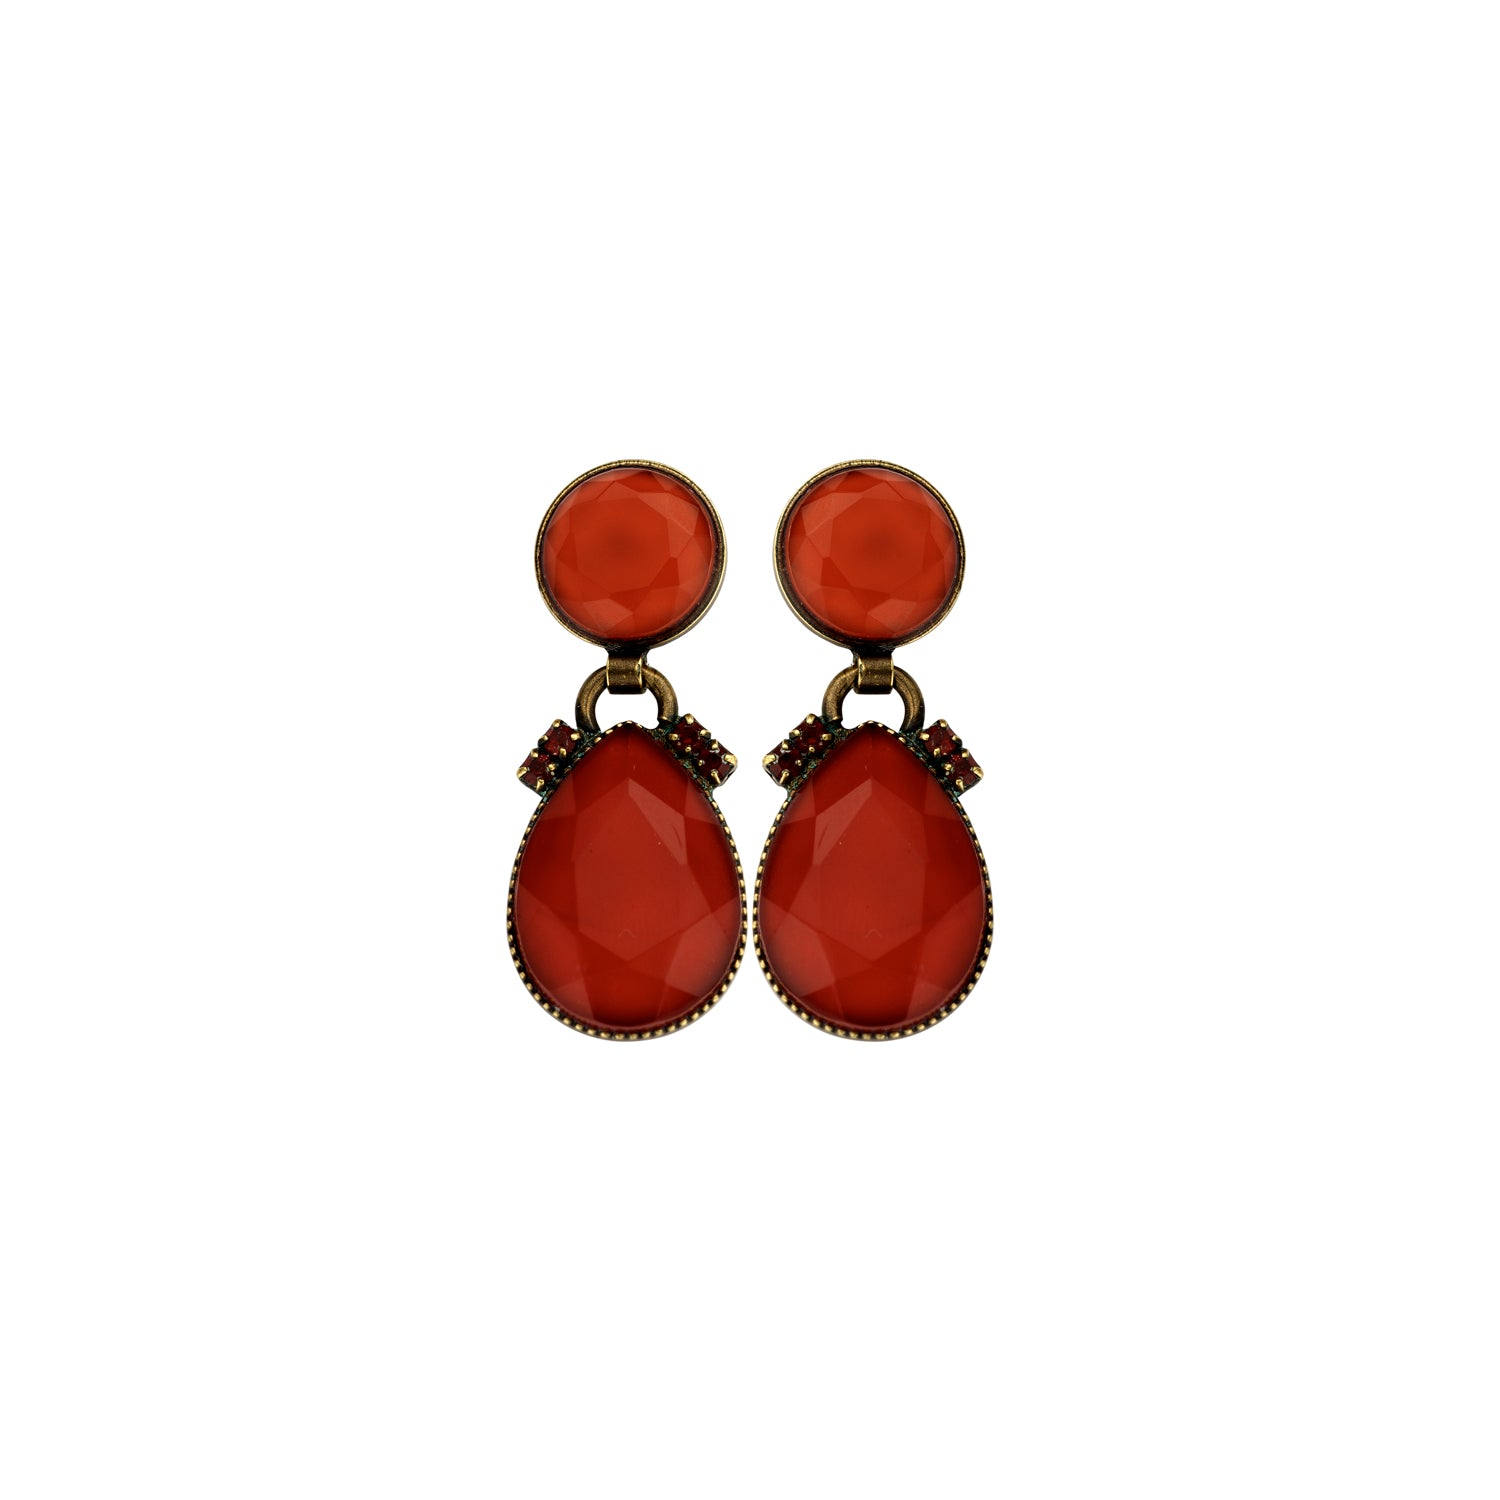 2 mini drops red earrings - Souvenirs de Pomme